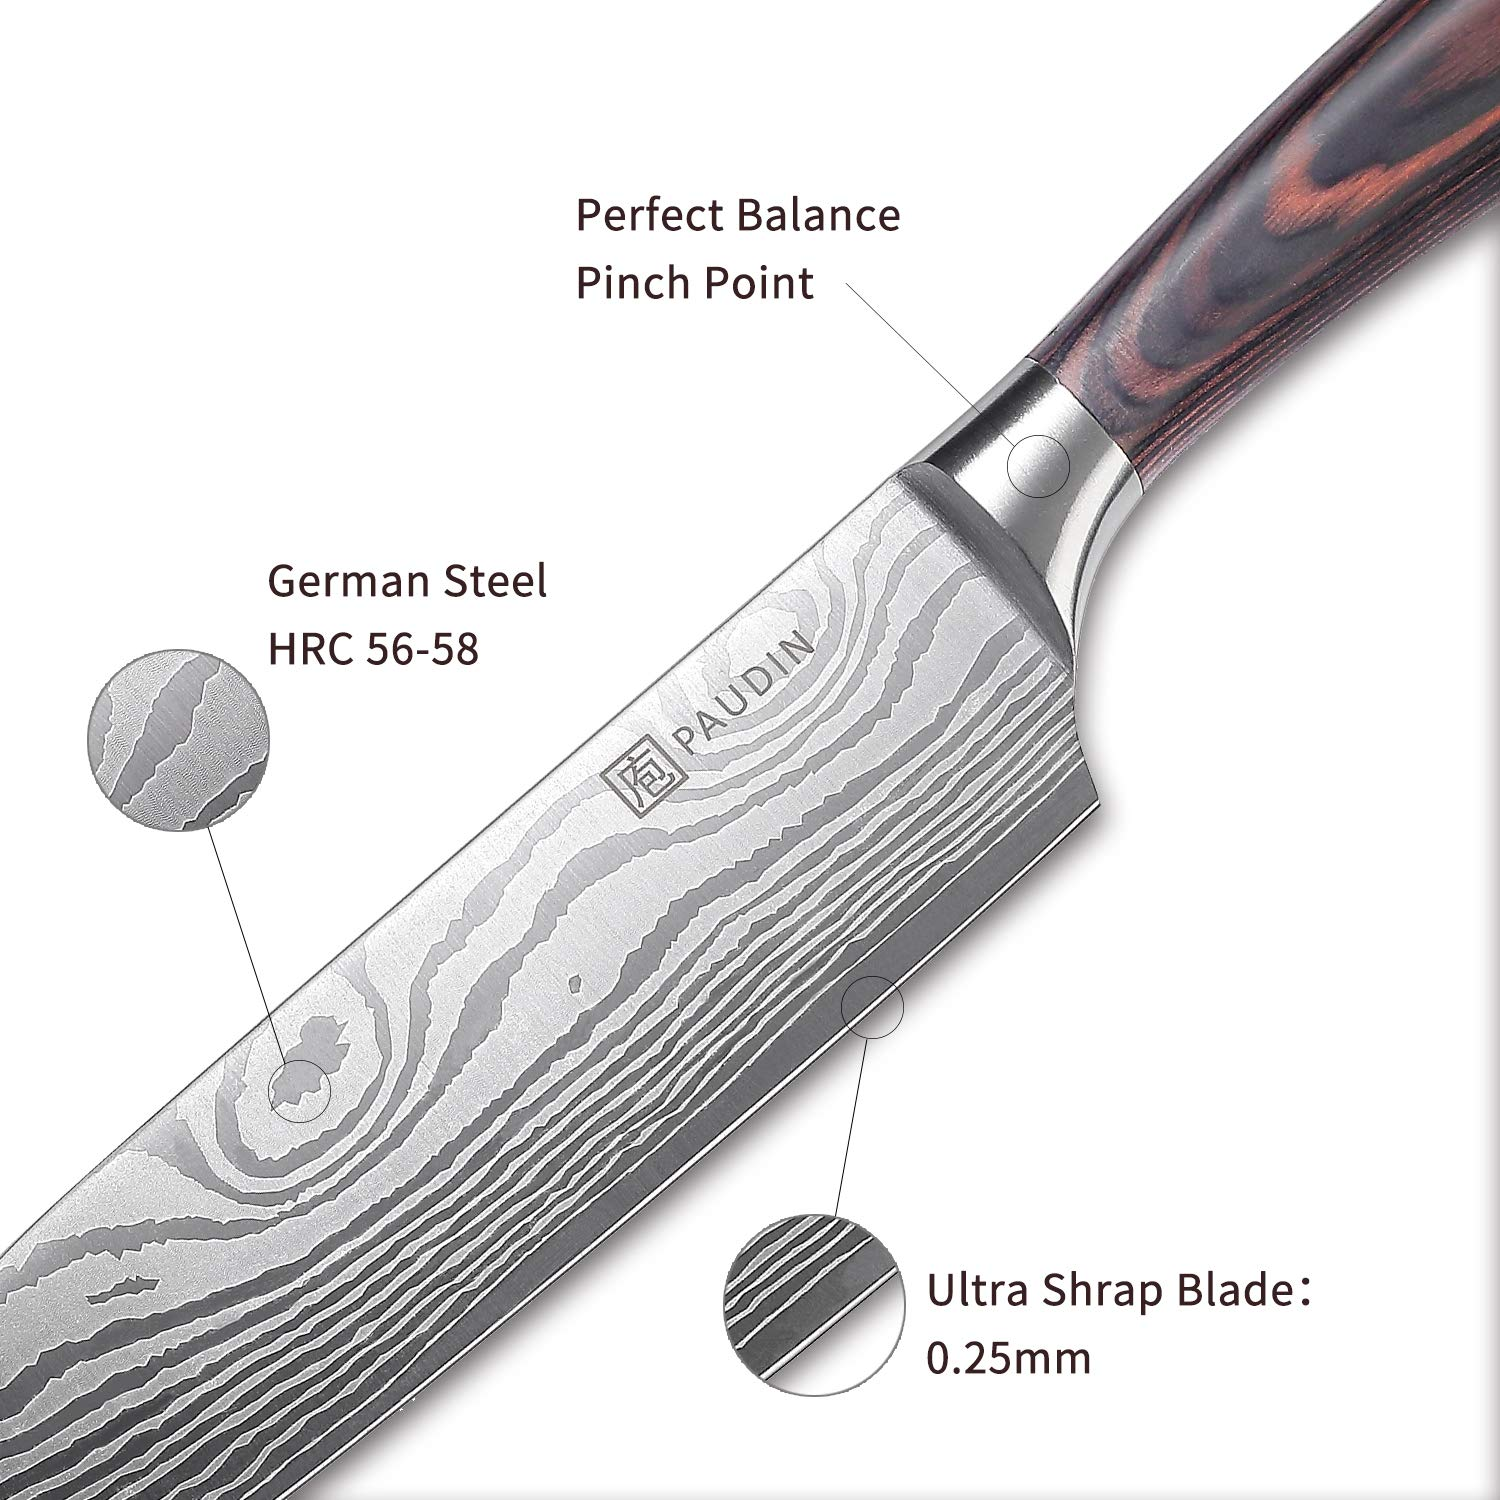 Santoku Knife - PAUDIN Classic 7 inch Hollow Ground Sharp Knife, German High Carbon Stainless Steel Kitchen Knife by PAUDIN (Image #4)